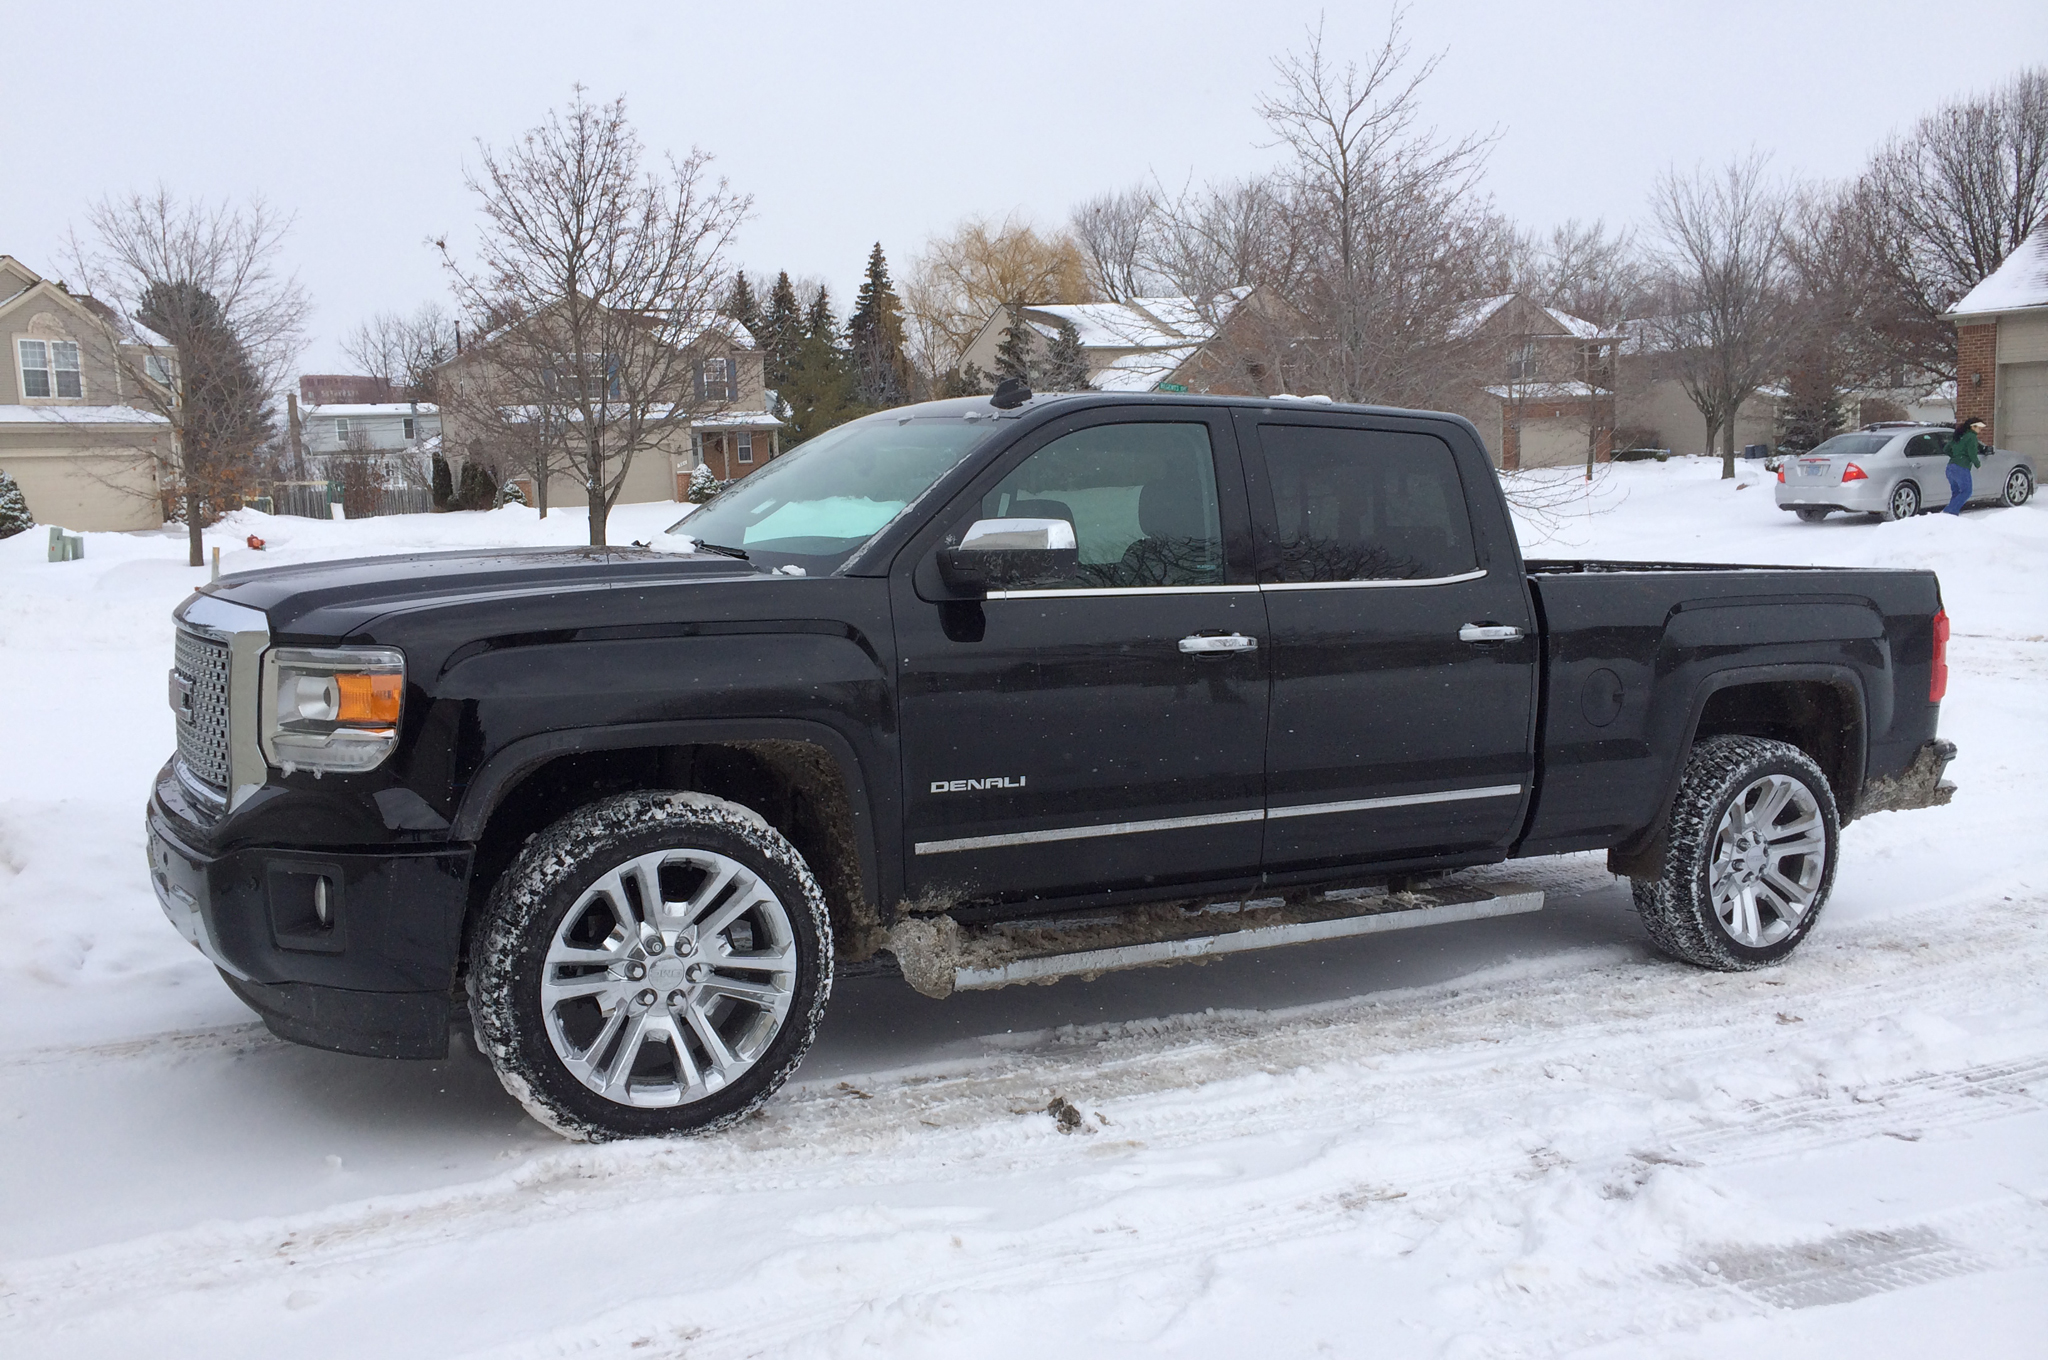 2014 GMC Sierra Denali 1500 4WD Crew Cab Review - Long-Term